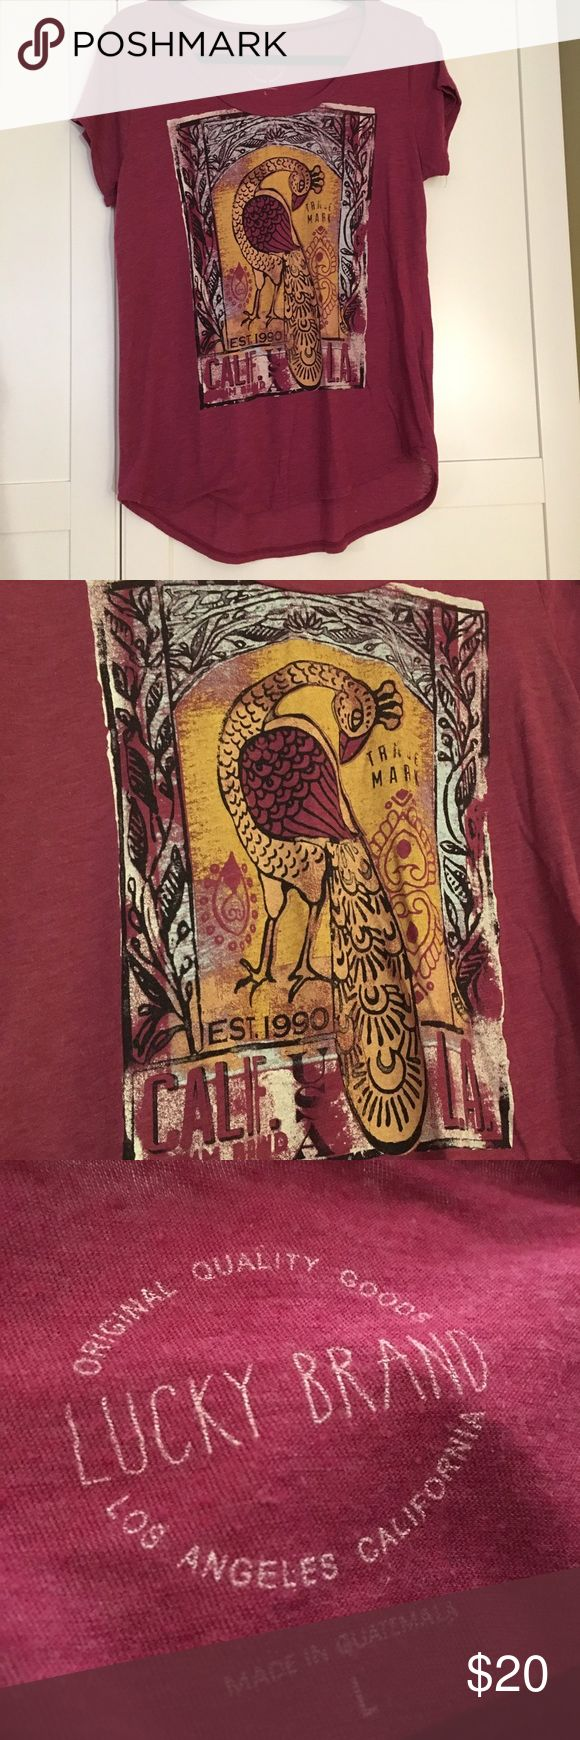 Lucky Brand Heritage Peacock Shirt Light and soft, cranberry color Lucky Brand vintage wash Heritage Peacock T-Shirt Lucky Brand Tops Tees - Short Sleeve